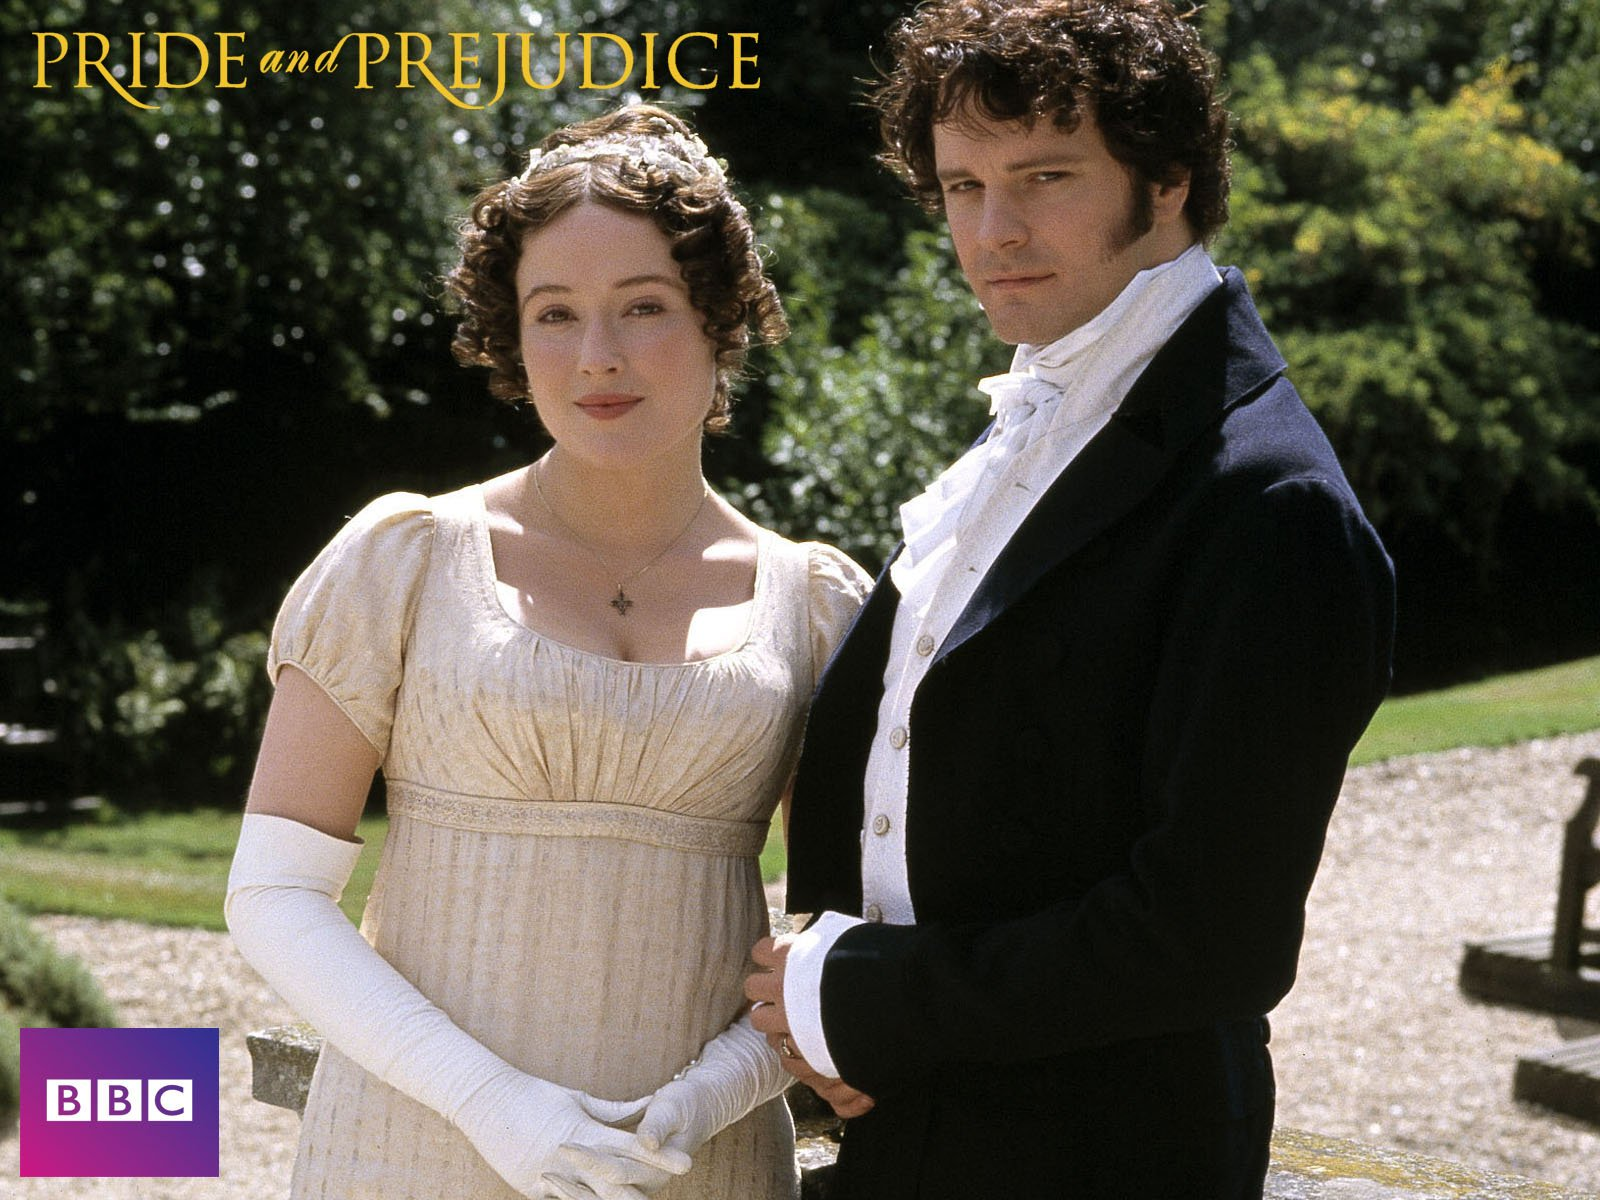 Amazon.com: Pride & Prejudice Season 1: Colin Firth, Jennifer Ehle ...